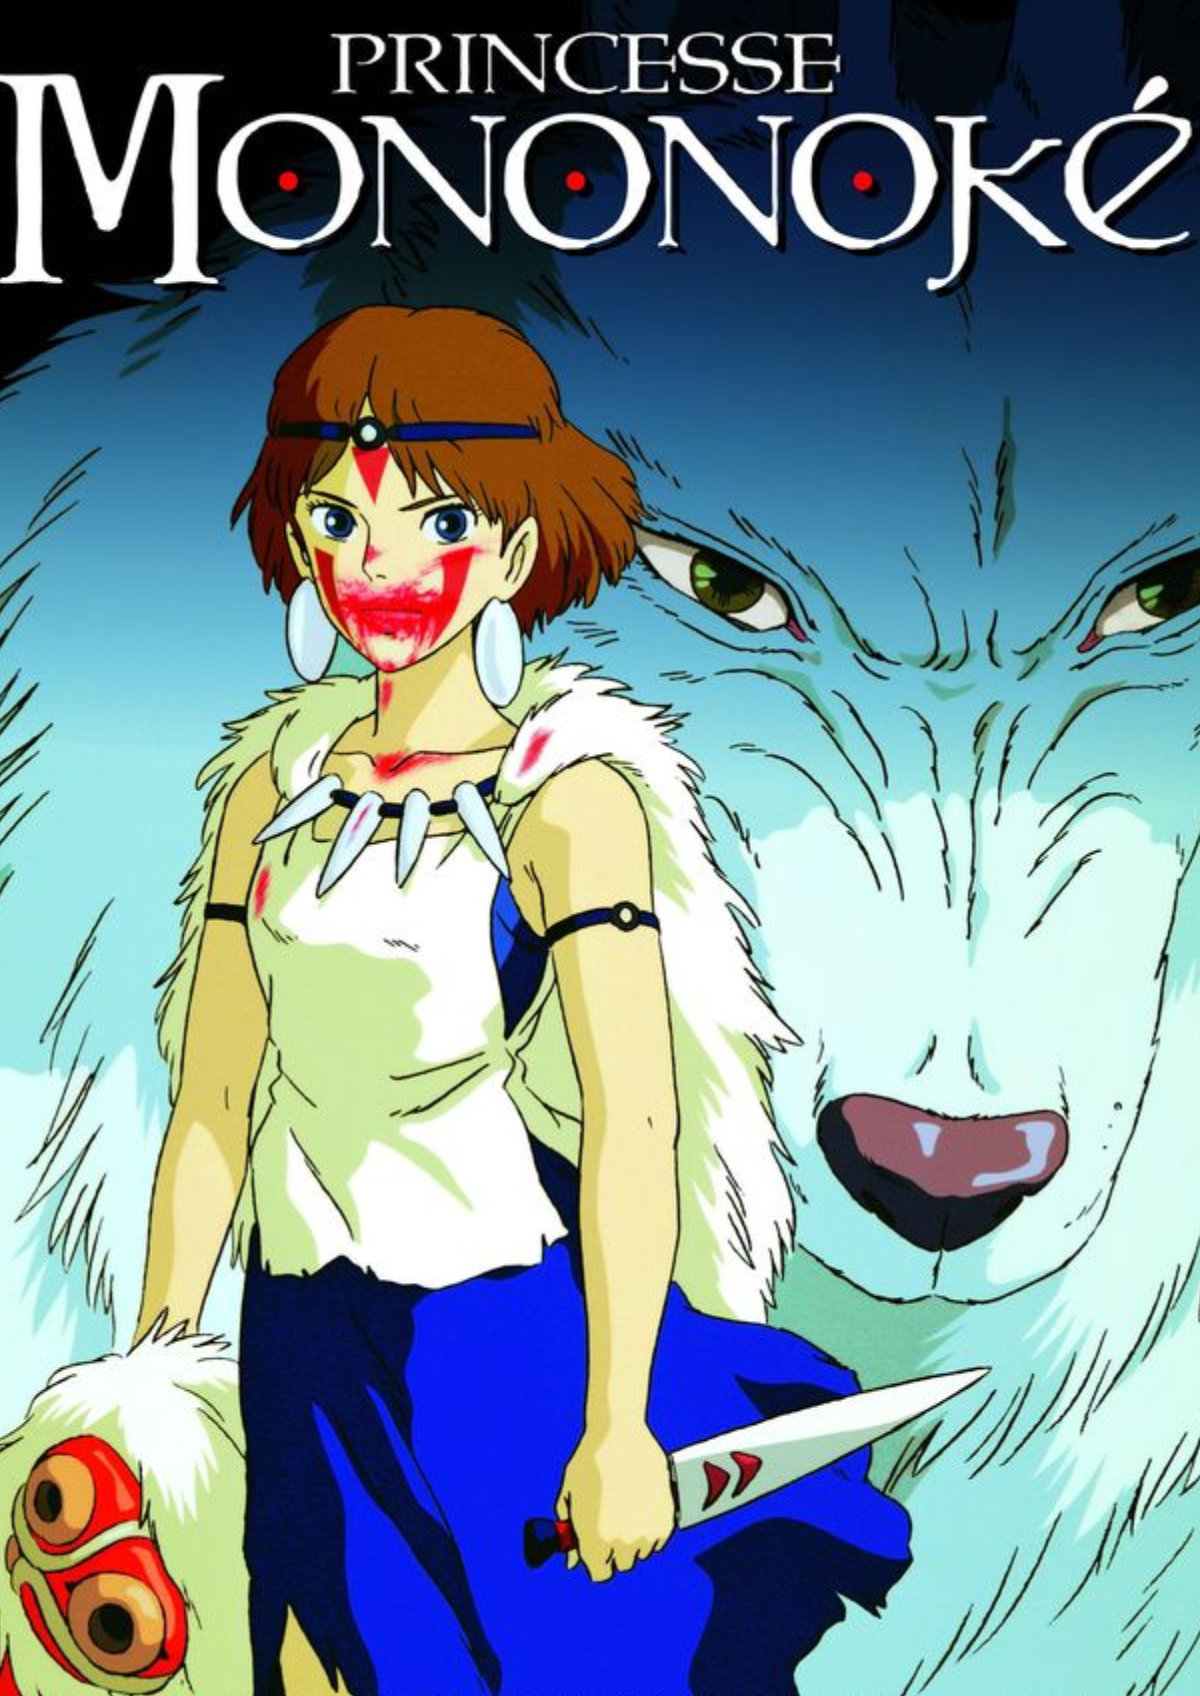 'Princess Mononoke' movie poster